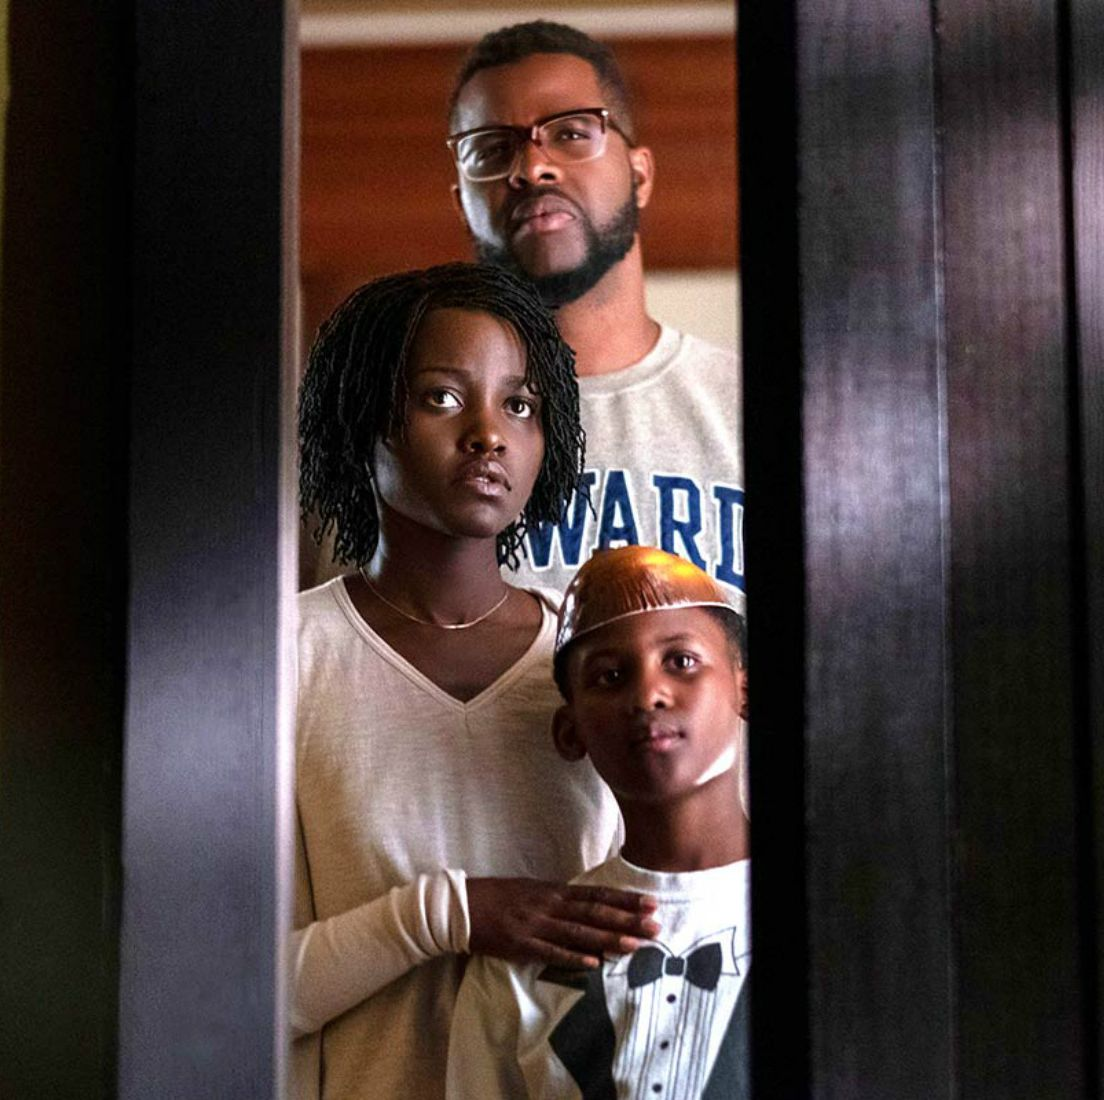 The Important Role Music Plays in Jordan Peele's Us